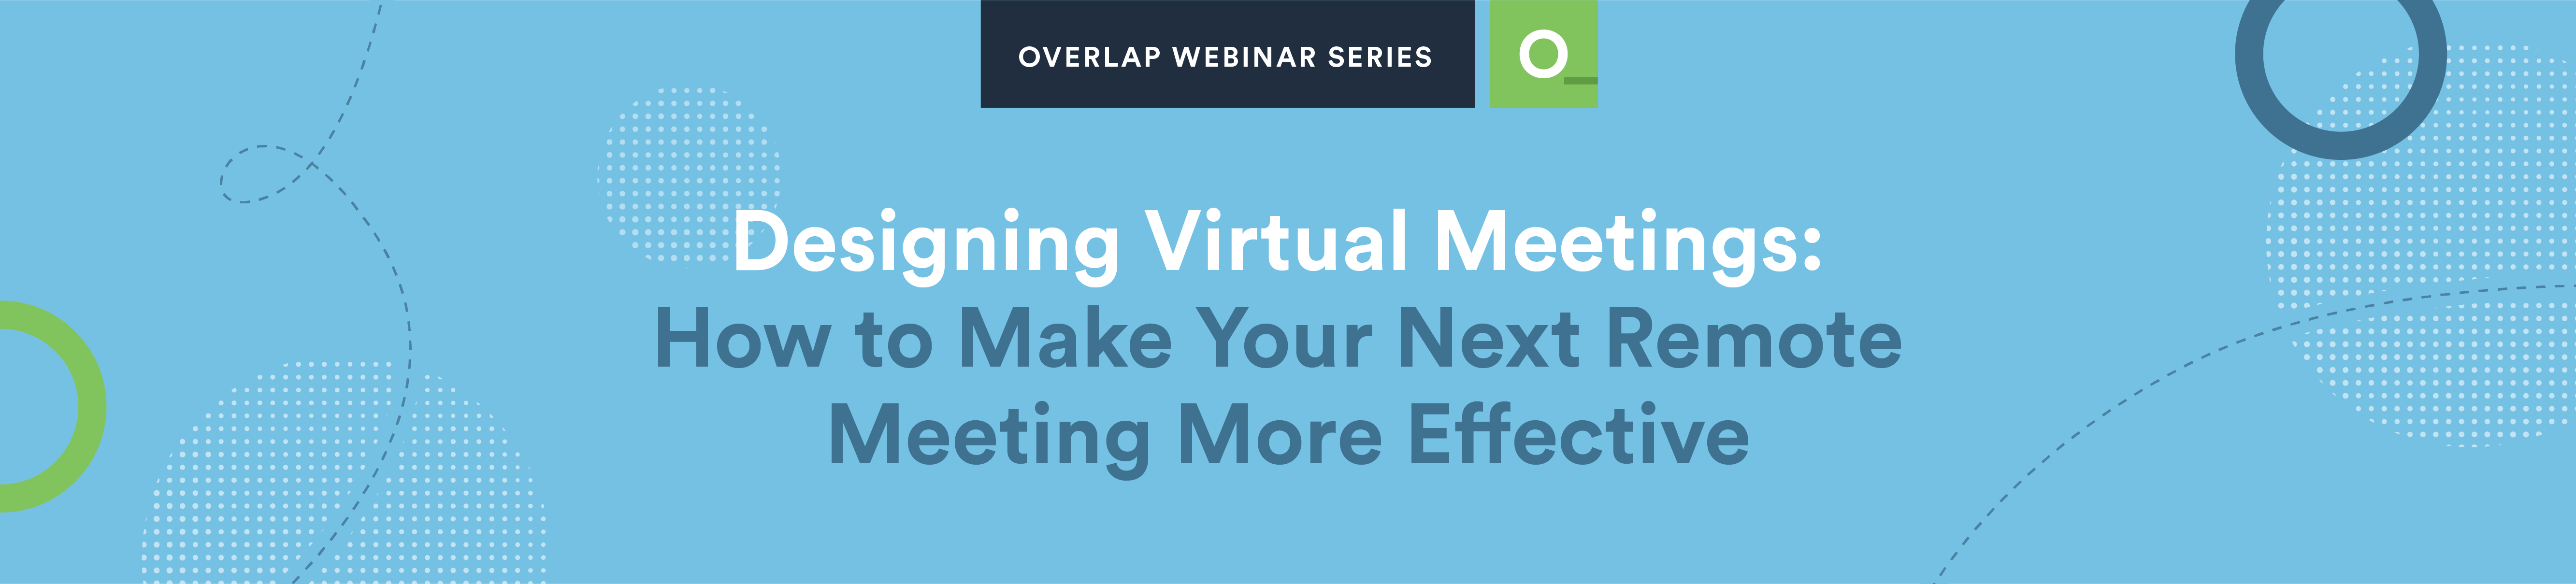 Designing Virtual Meetings: How to Make Your Next Remote Meeting More Effective